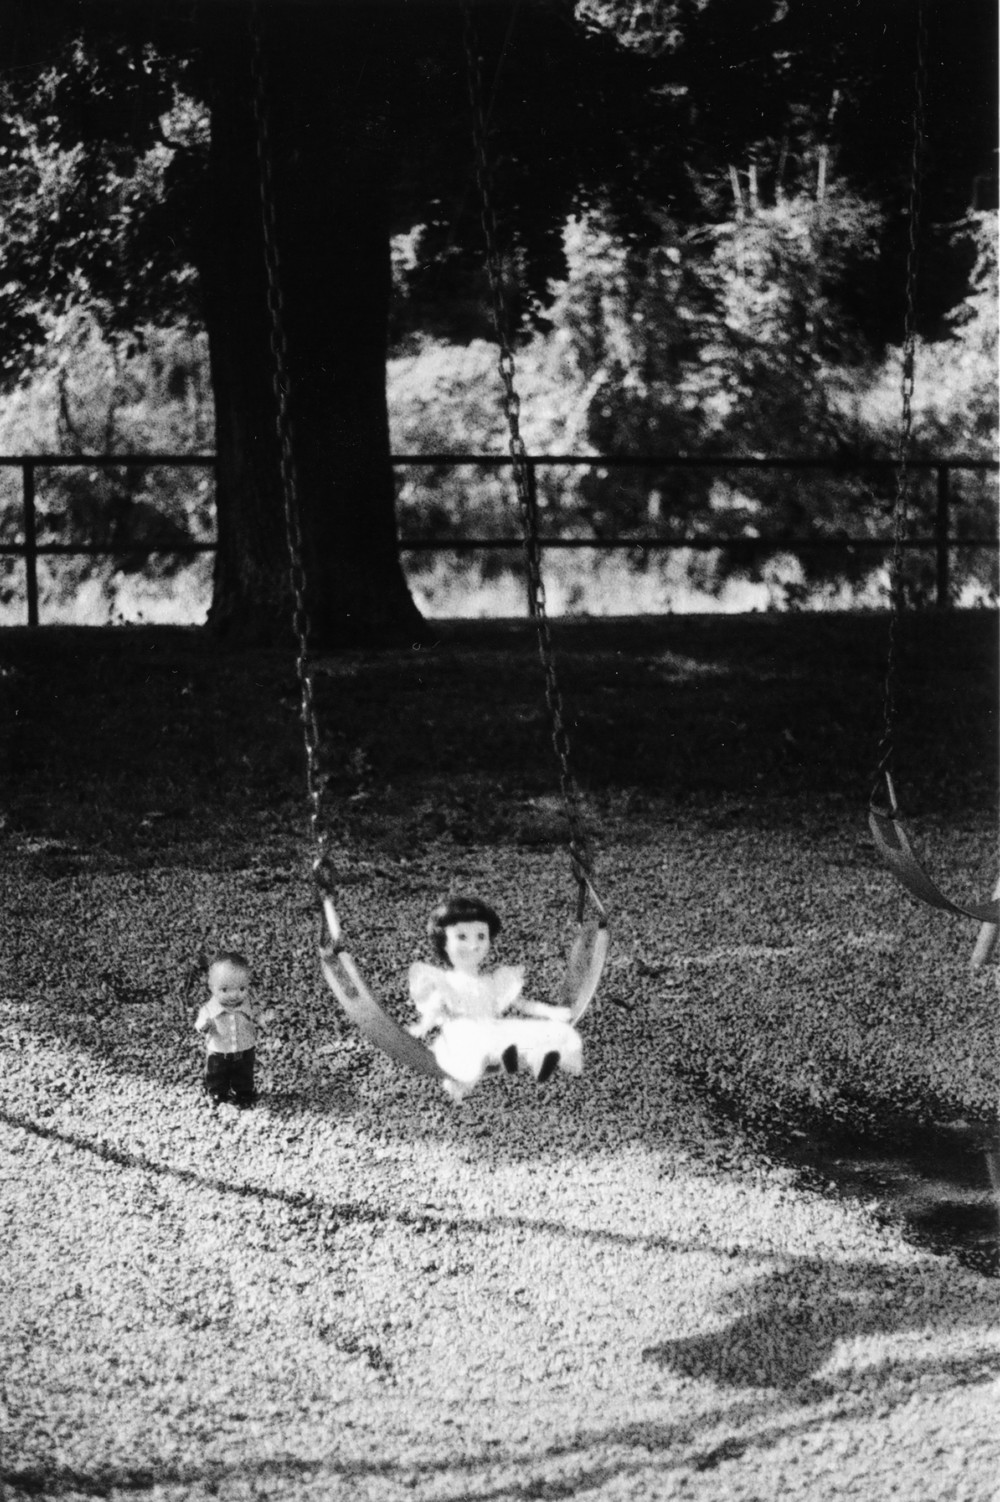 Buddy and Rosalind on a swing